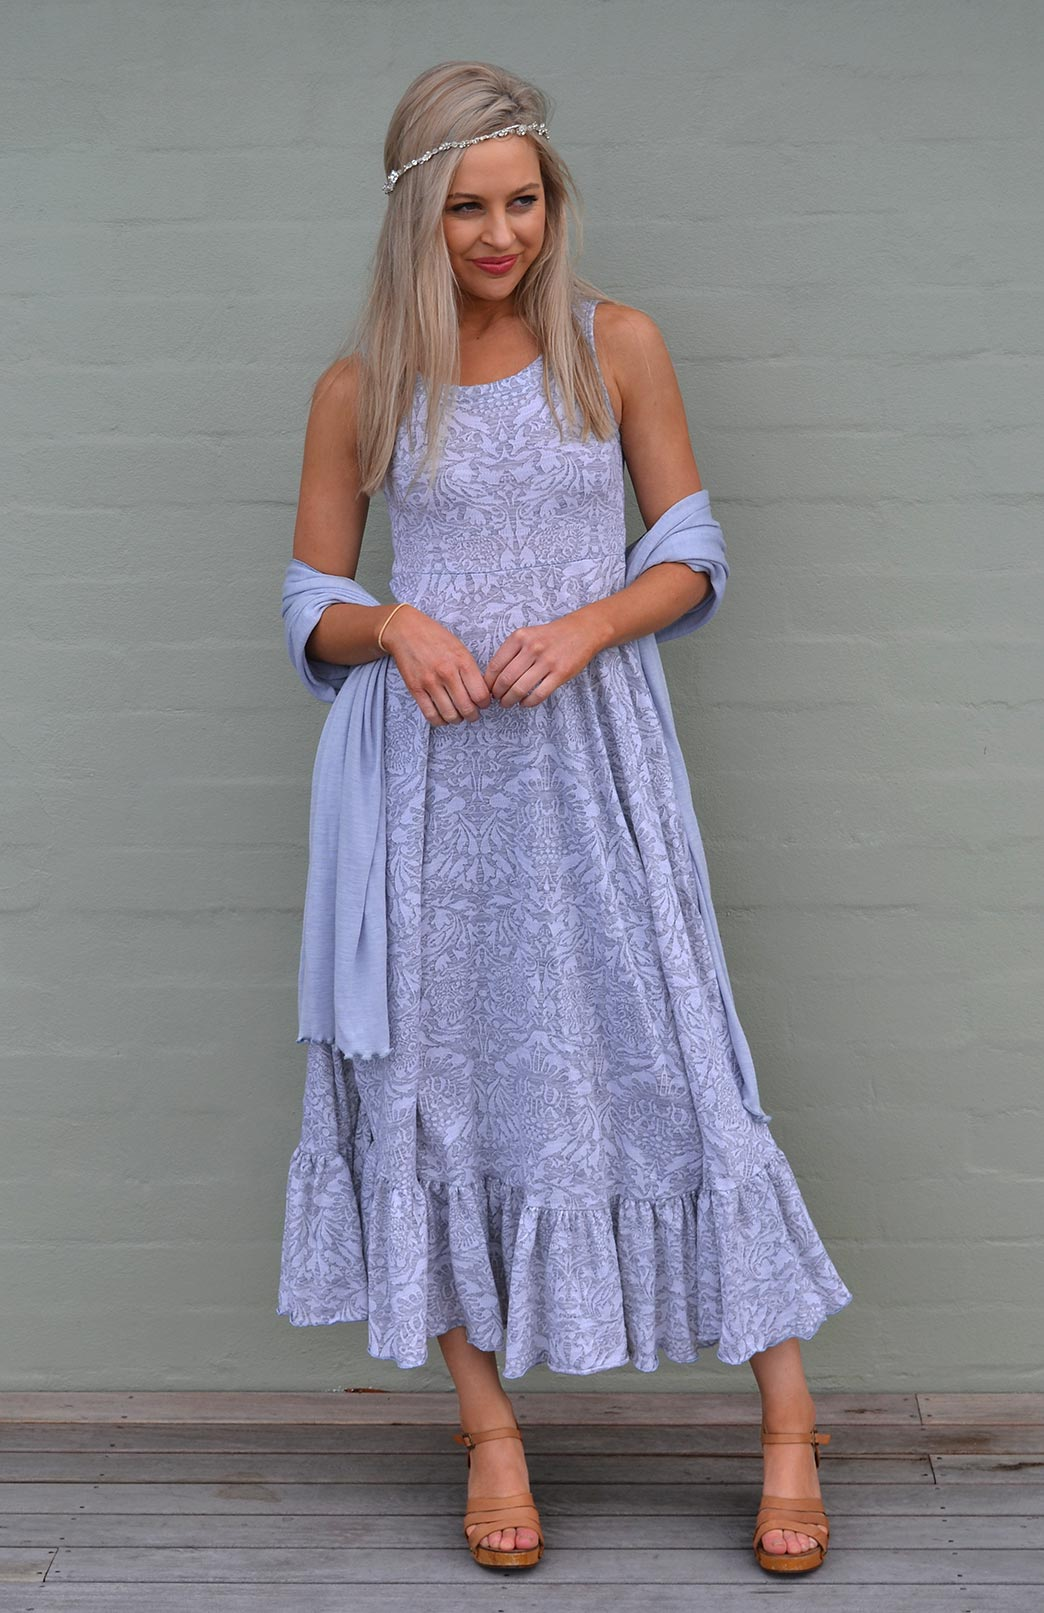 Fleur Maxi Dress - Women's Soft Grey and White Floral Merino Wool Sleeveless Summer Maxi Dress - Smitten Merino Tasmania Australia